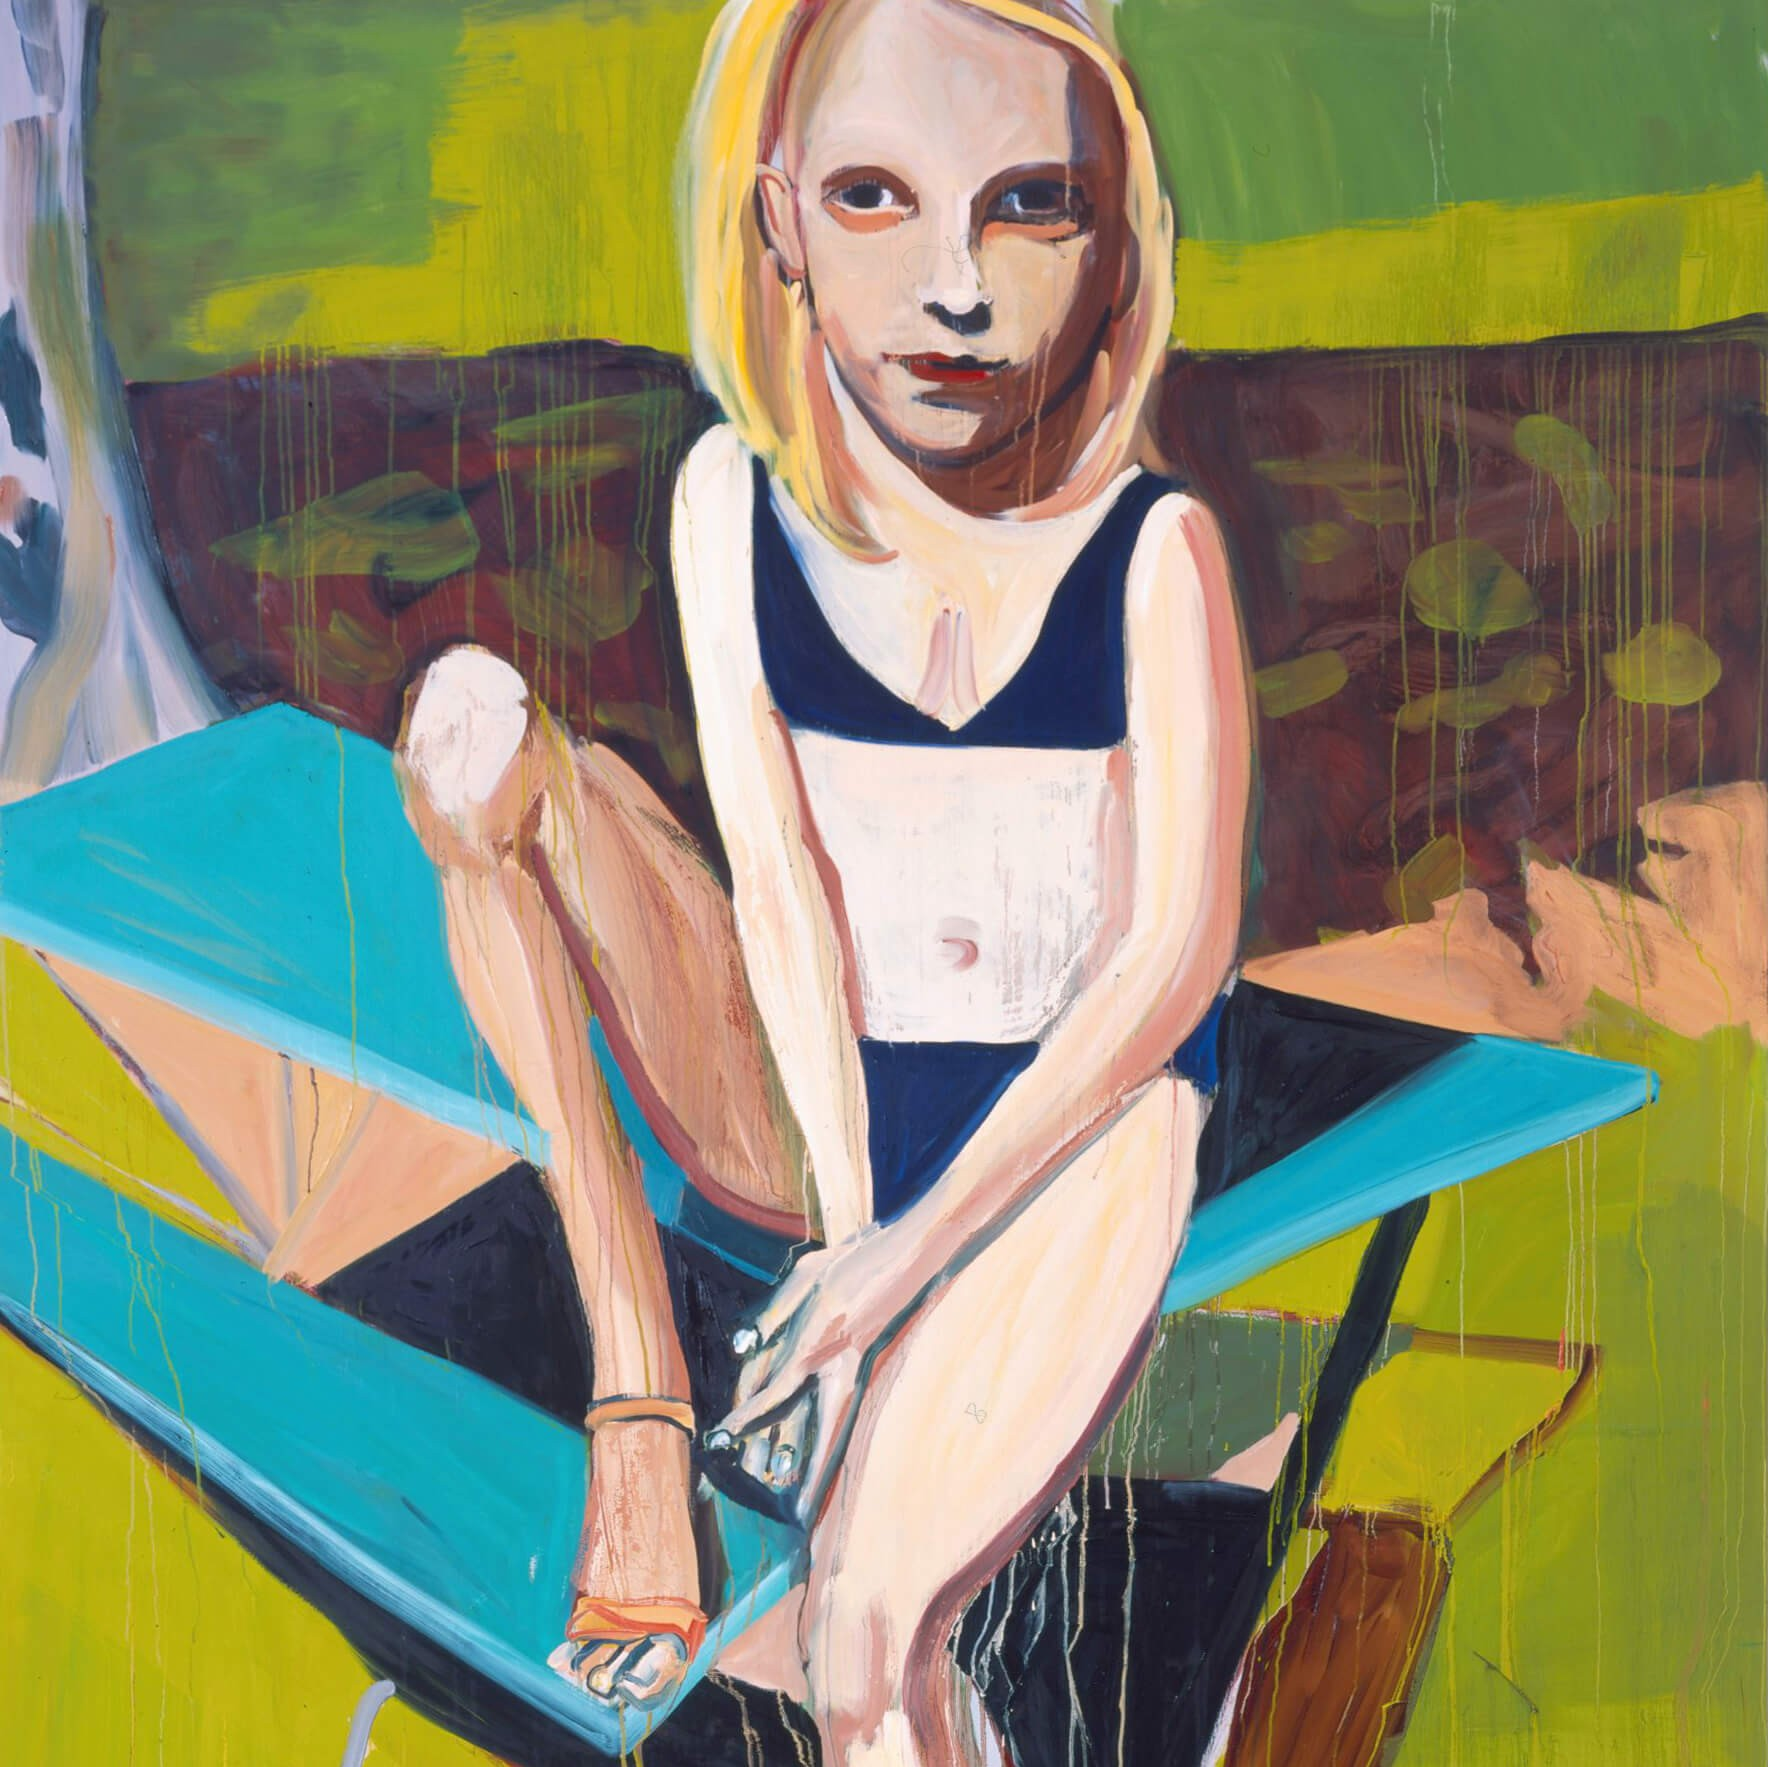 for artist chantal joffe mothers and models are equally